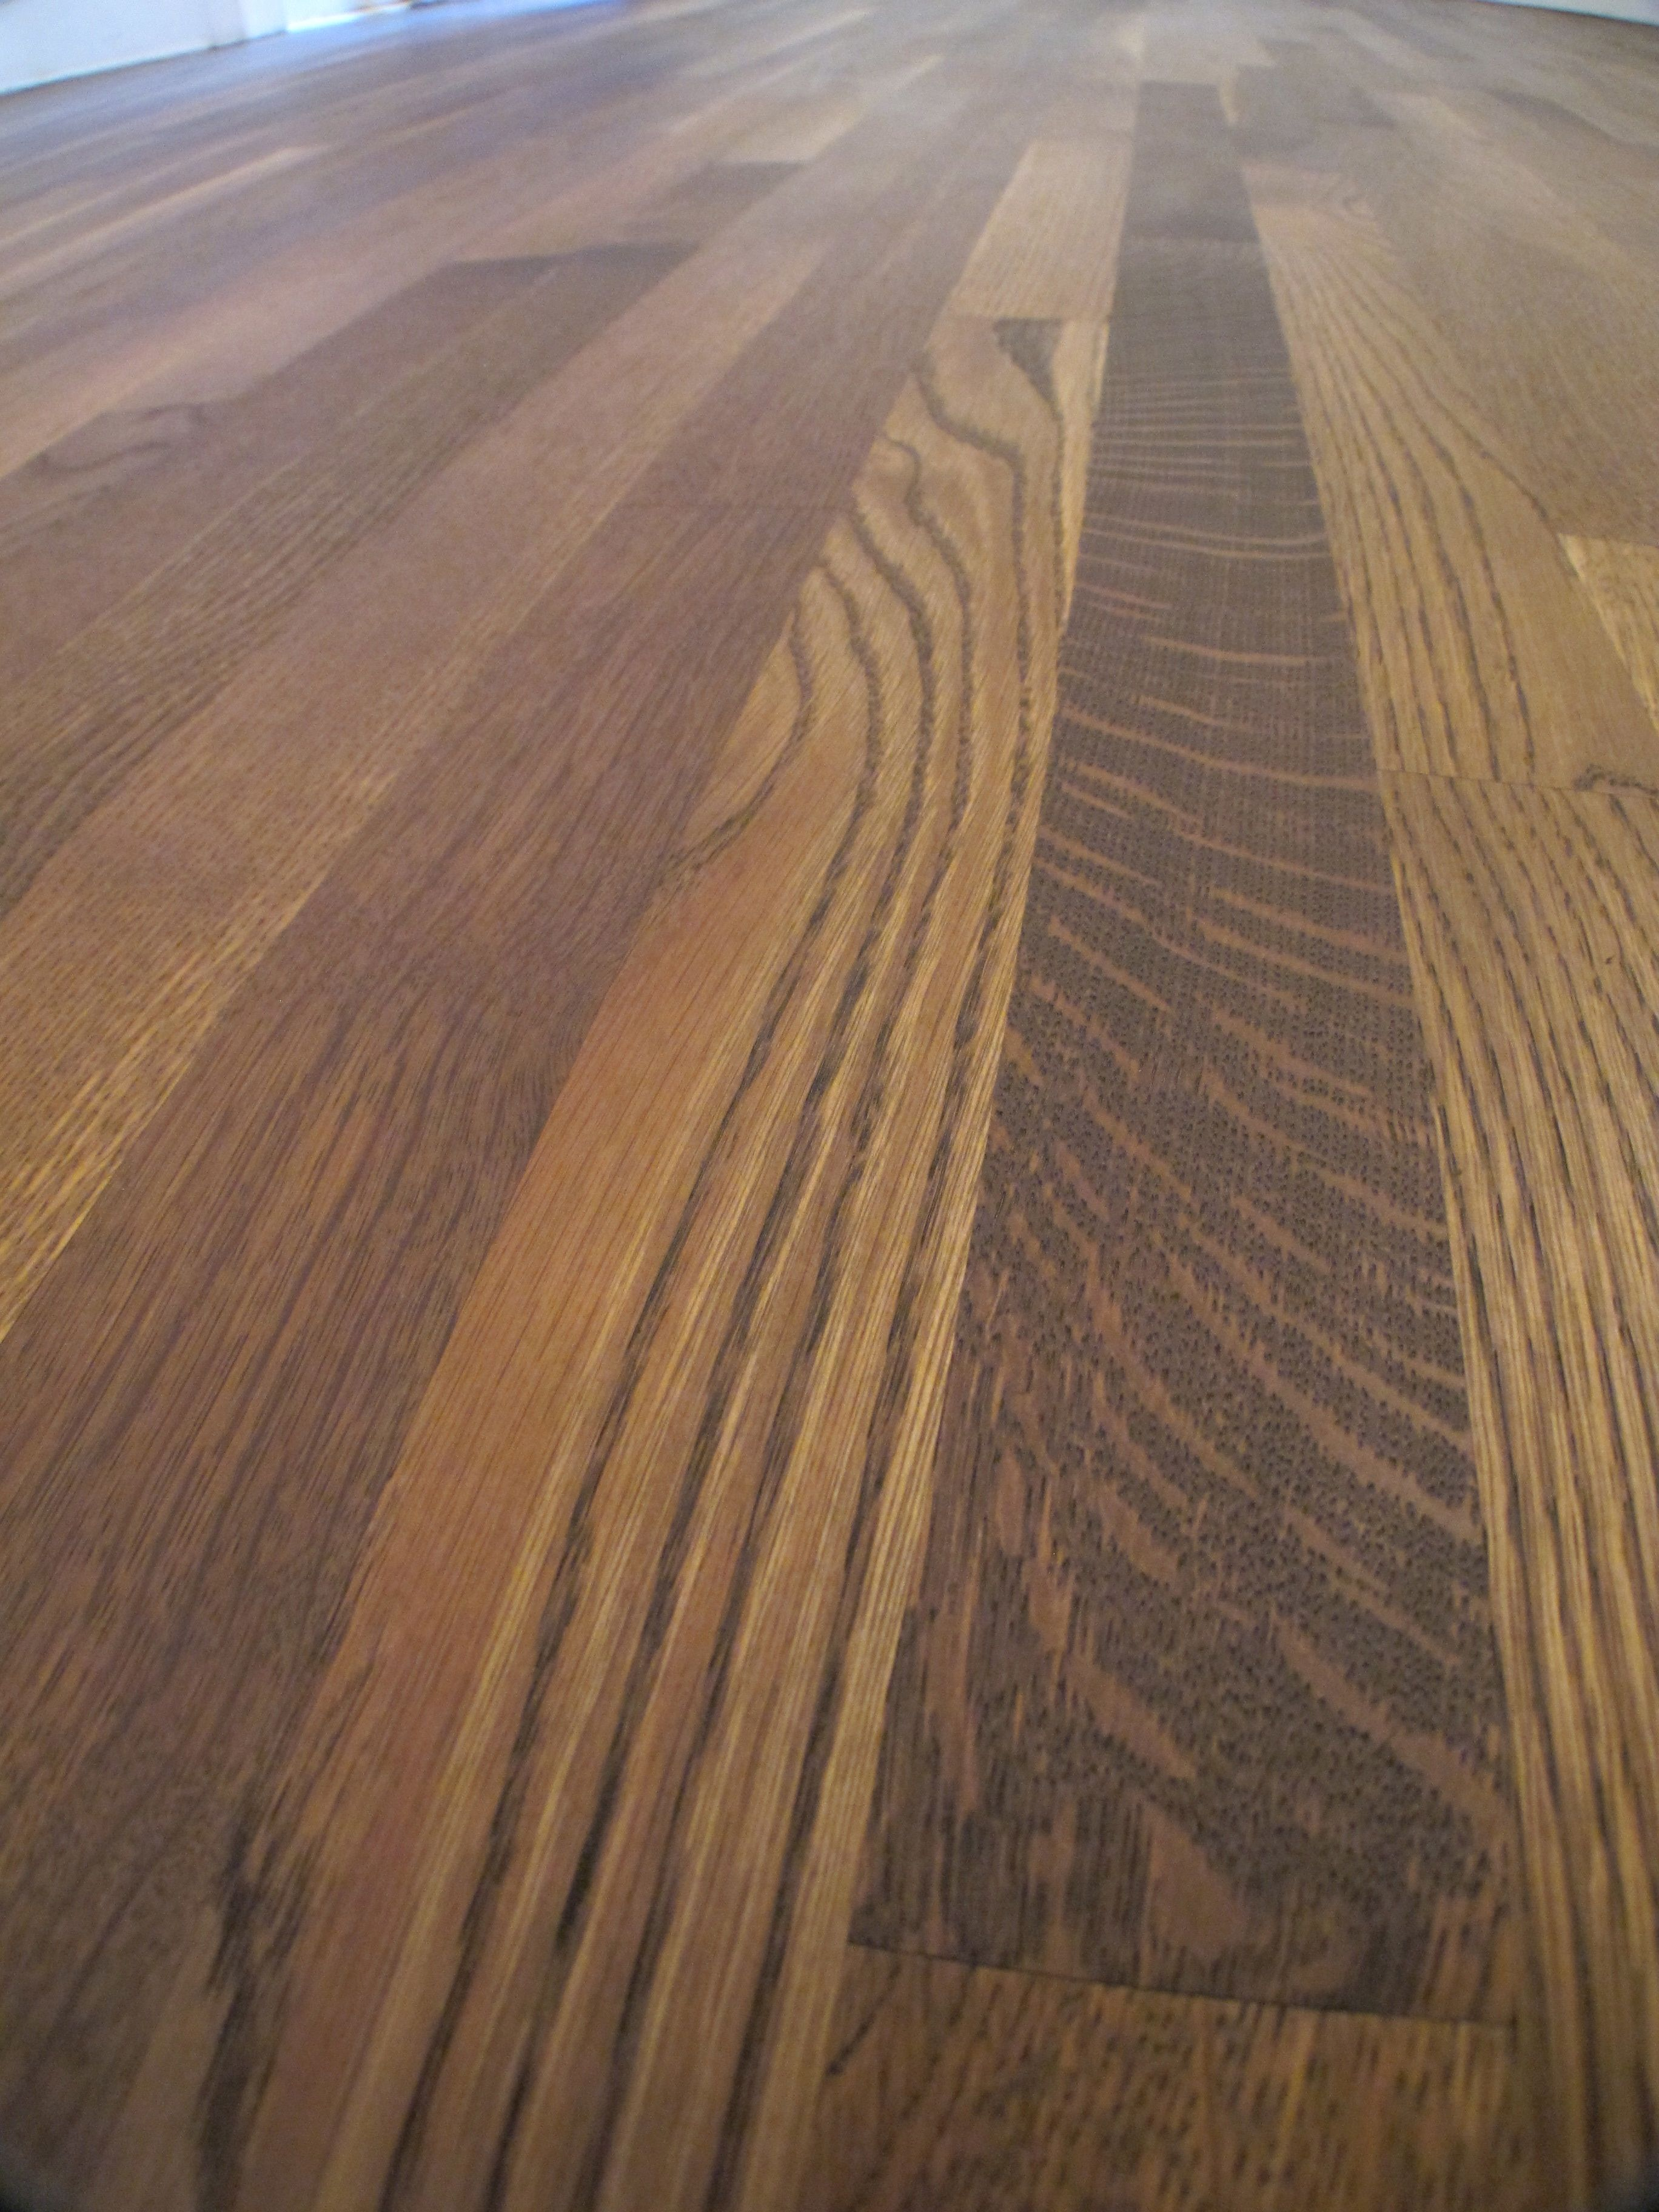 Wood Color And Protection With 0 V O C Wood Floor Colors Floor Restoration Rubio Monocoat